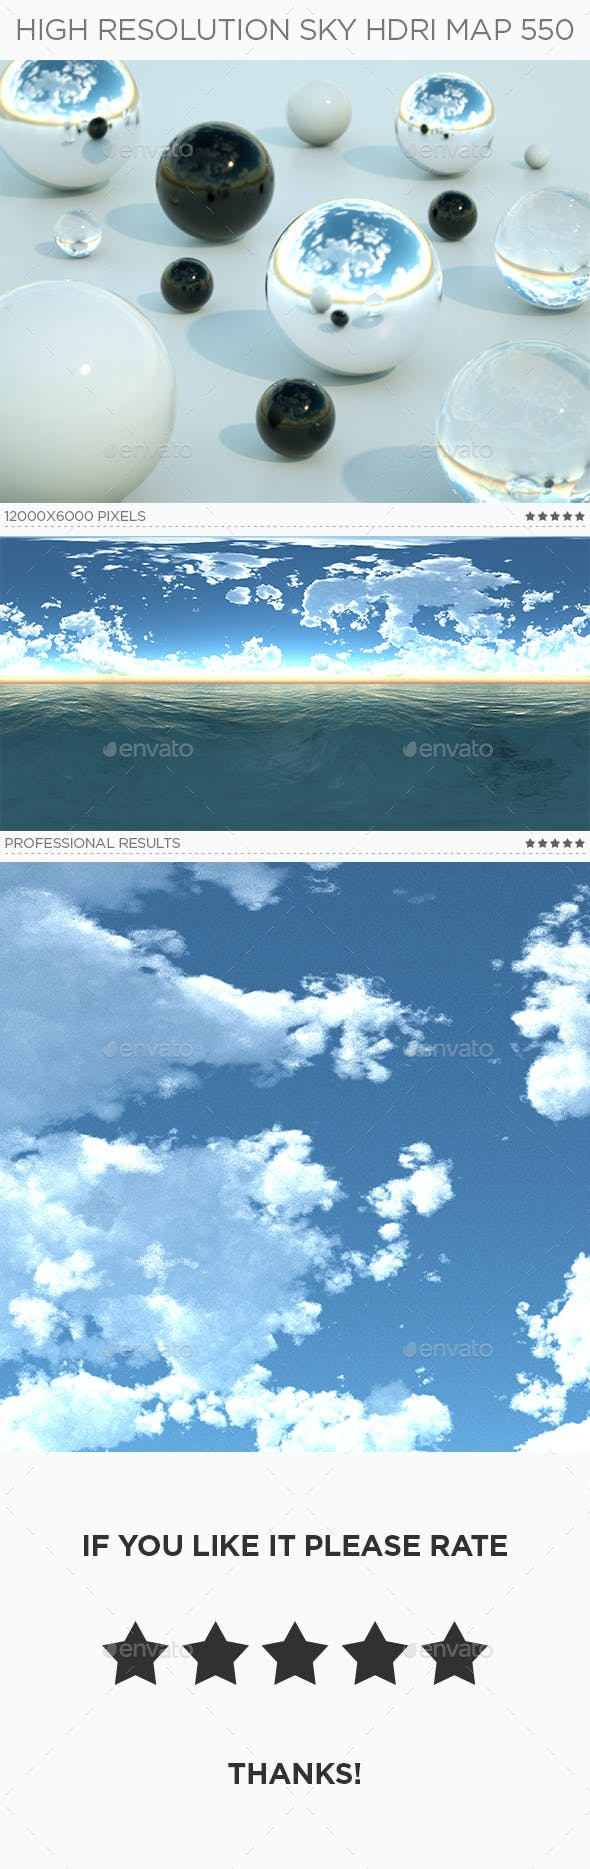 High Resolution Sky HDRi Map 550 - 3DOcean Item for Sale